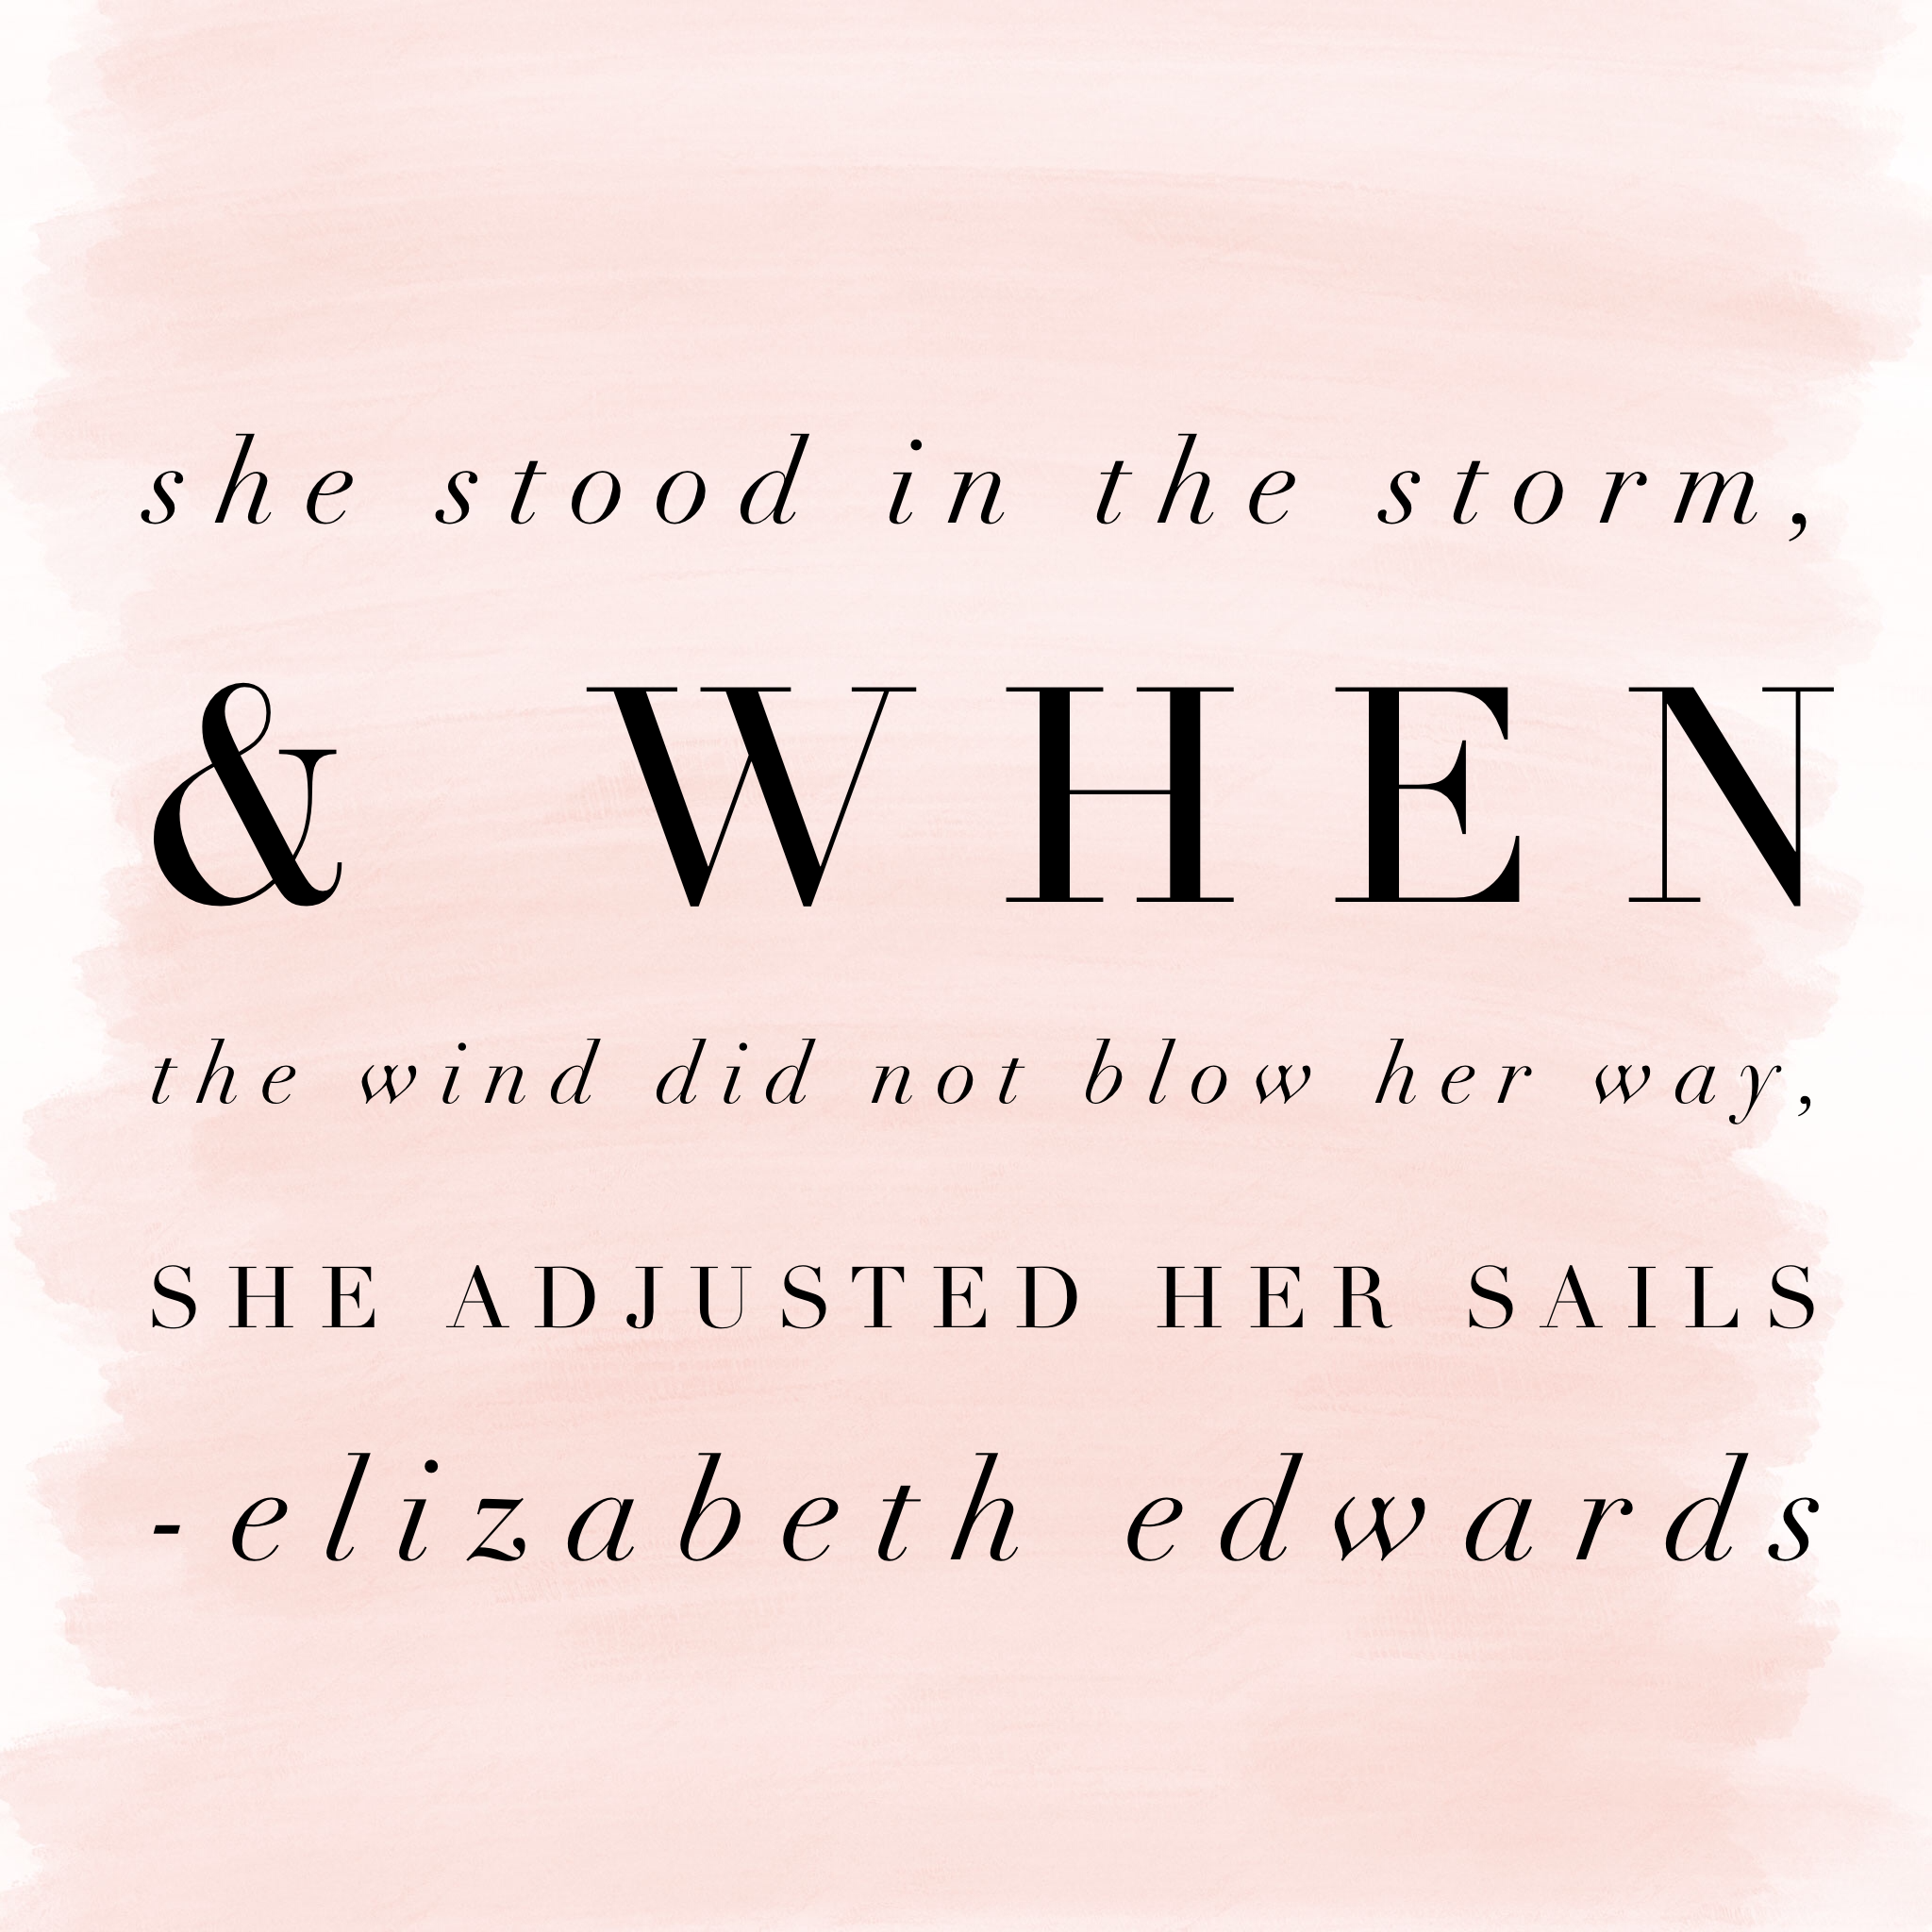 Great quote from notable woman Elizabeth Edwards